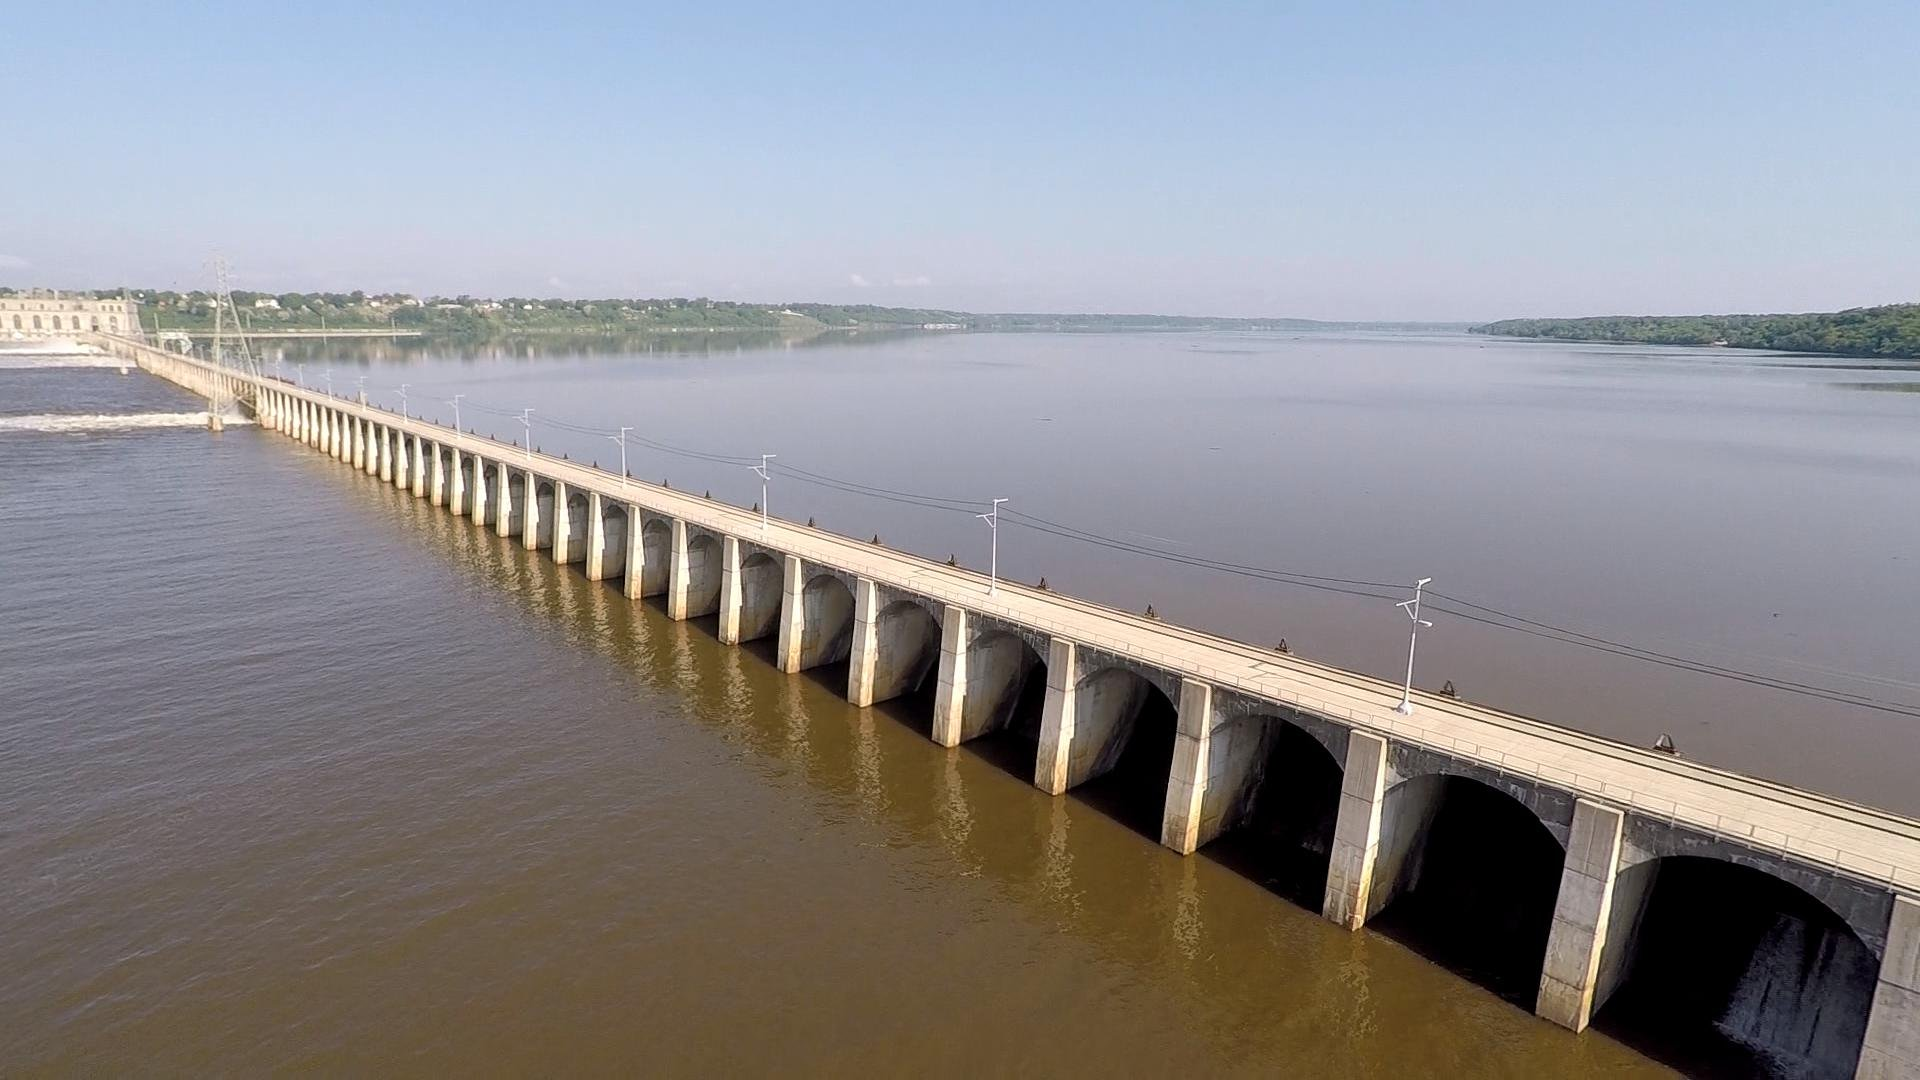 The WGEM News Drone shows Lock and Dam 19 in Keokuk.